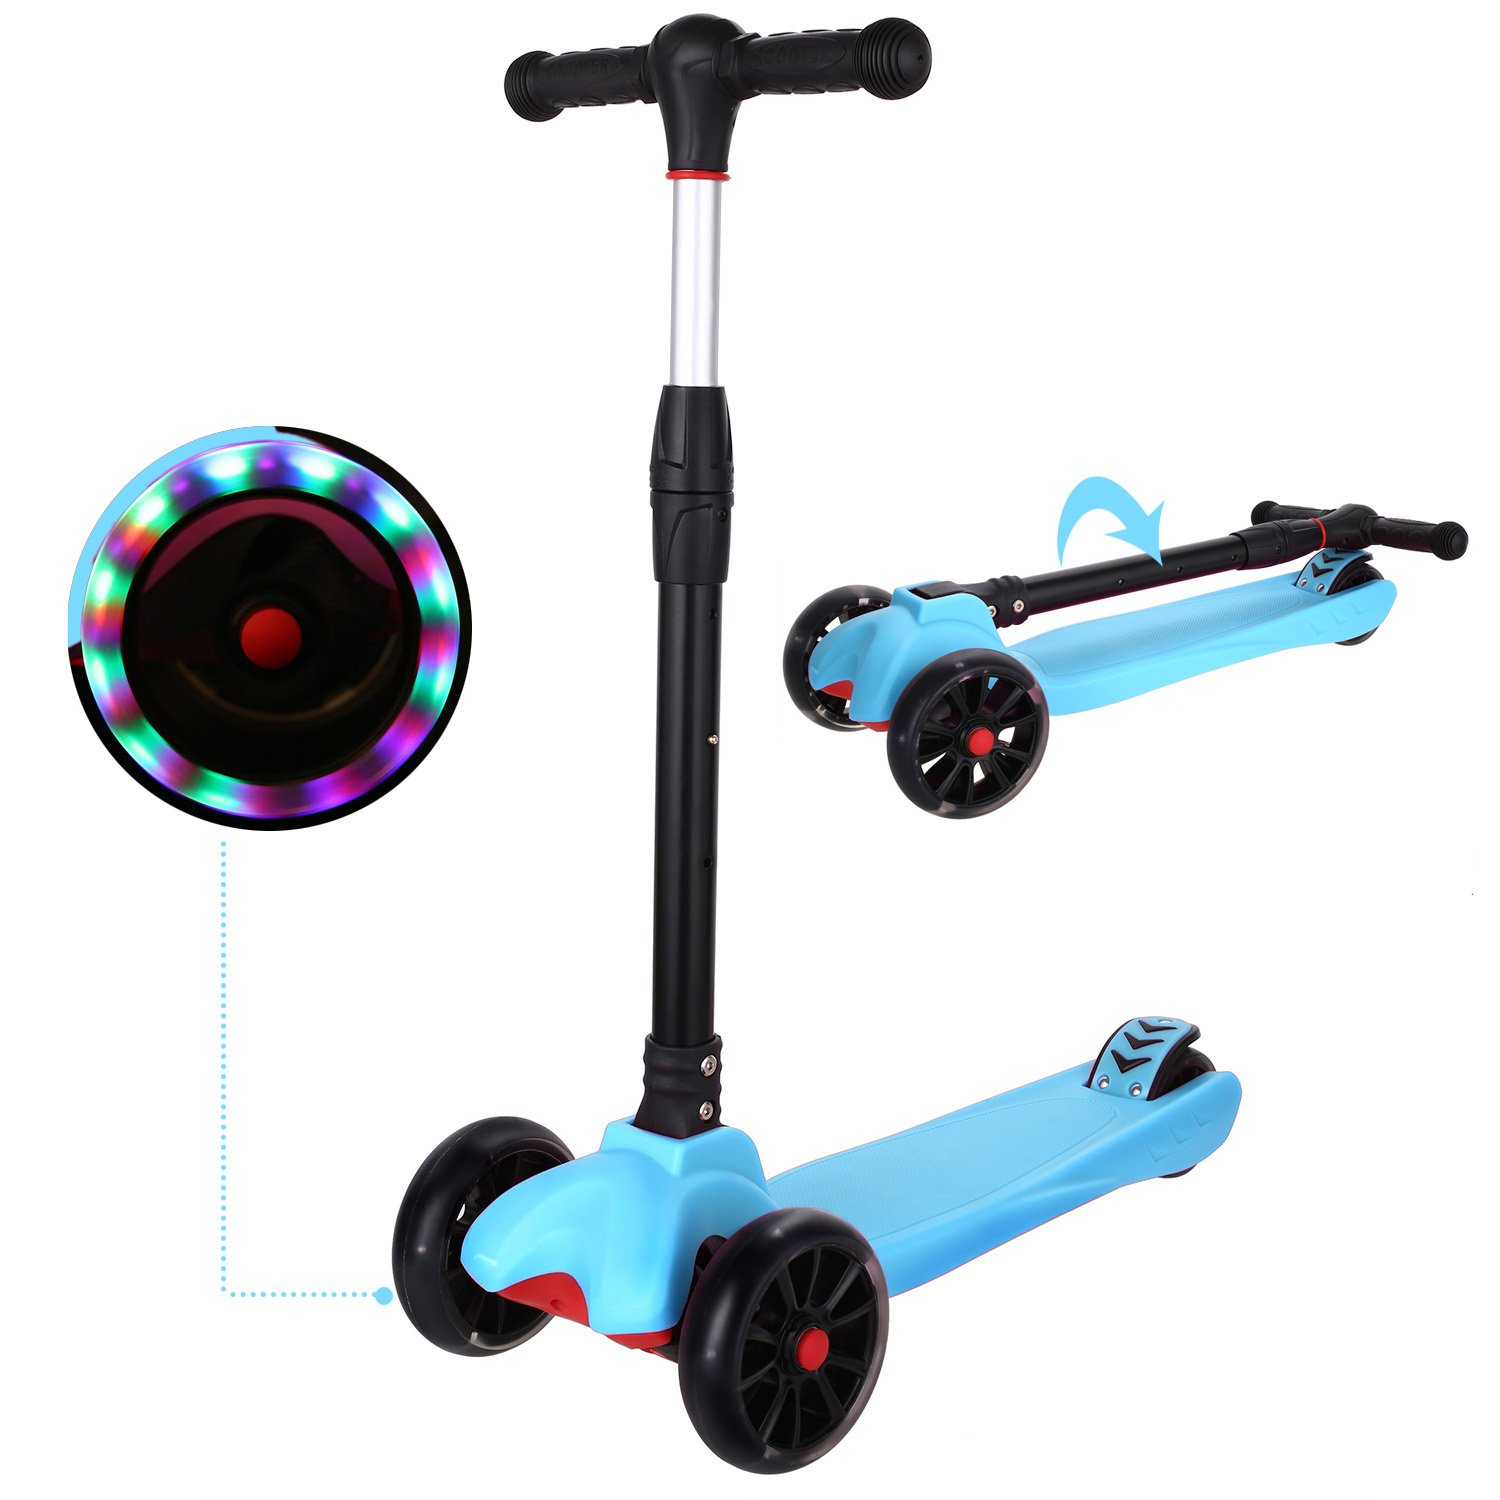 Yuebo New Kick Scooter Wheel Scooter For Kids Christmas Gift Mini Small Adjustable Height &Foldable Scooter with 4 LED Light Wheels Ride On PU ABEC-5 Bearing Wheels for Person over 3 Year Old